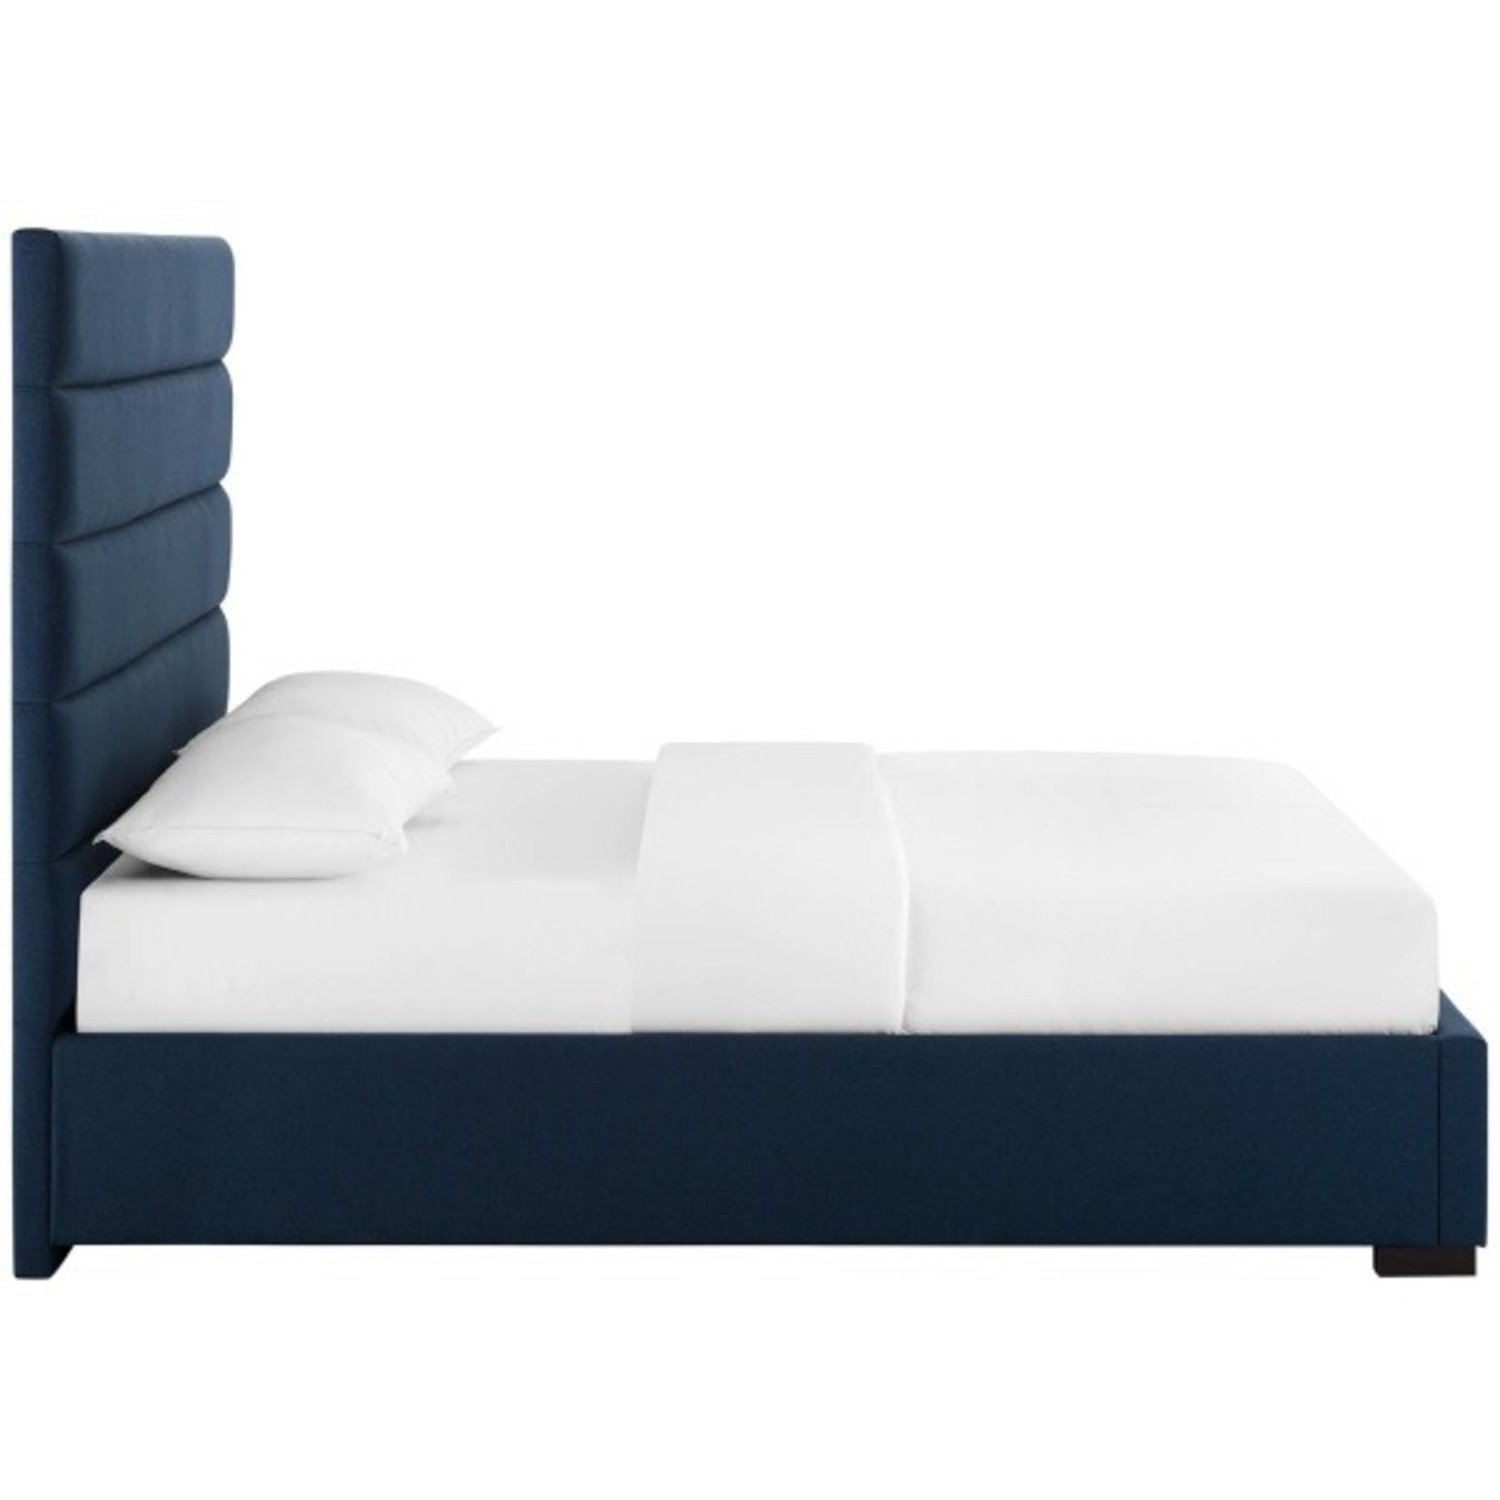 Modway Genevieve Upholstered Queen Bed - image-3